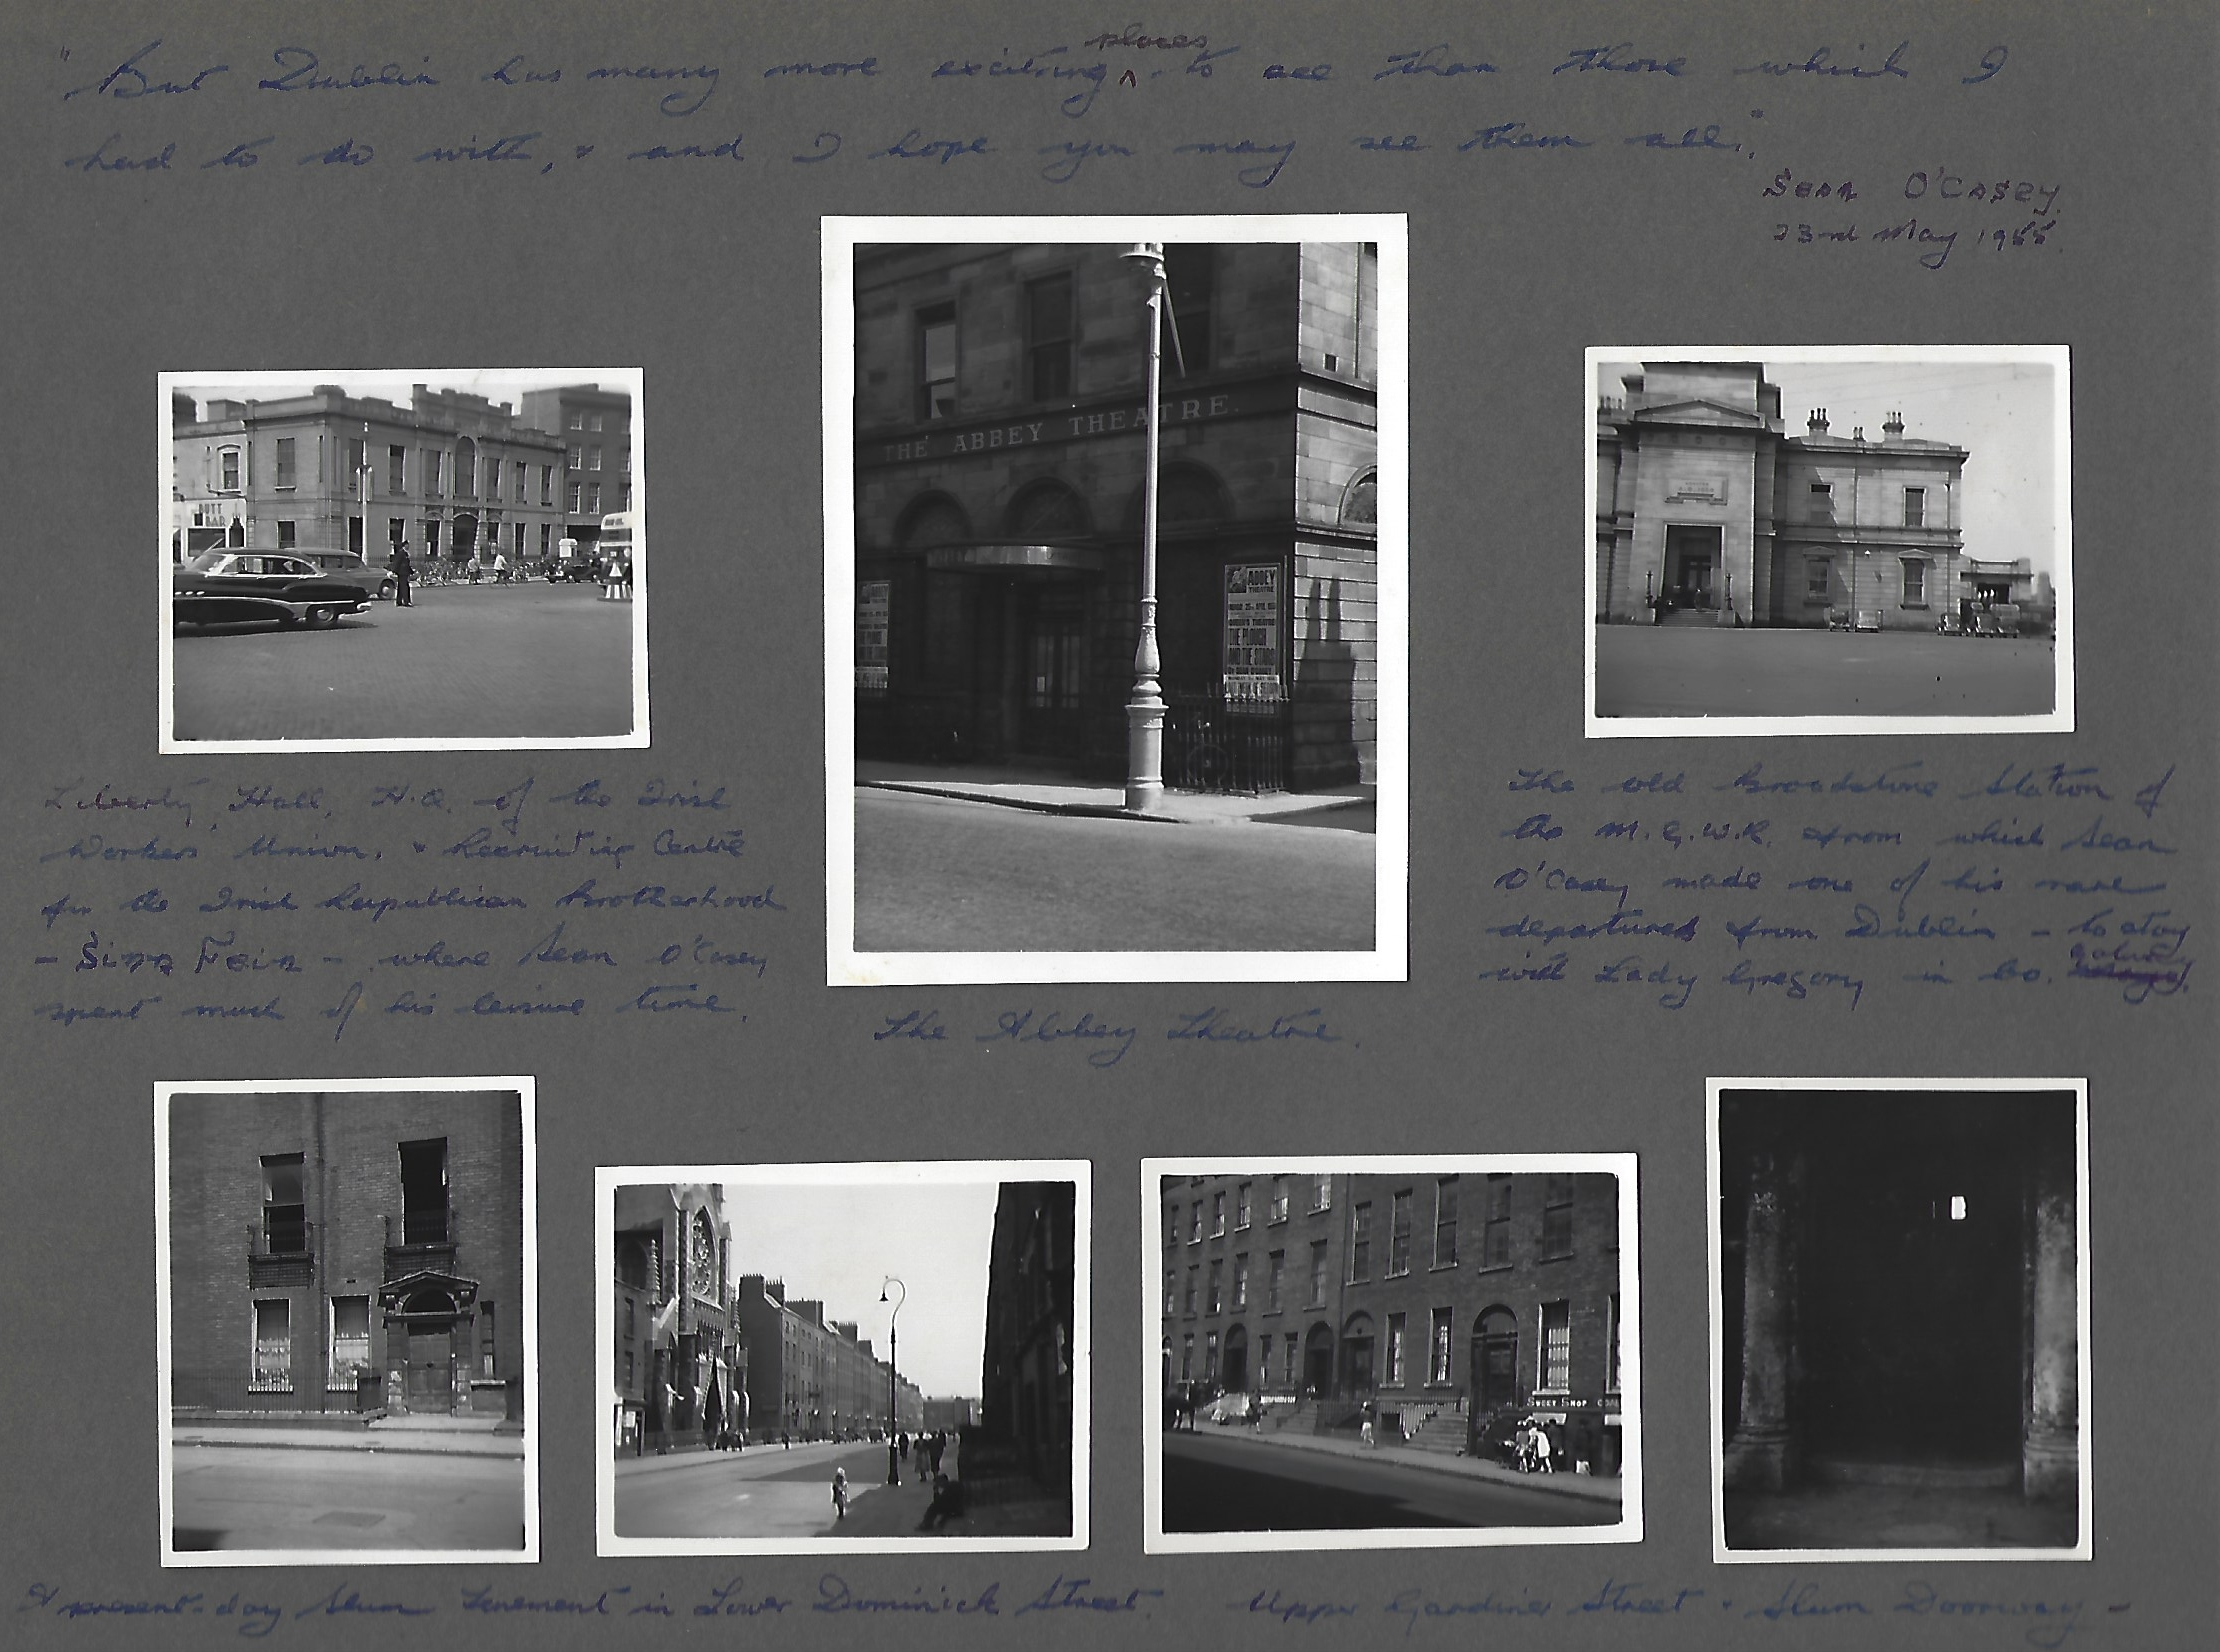 David Butcher's photo album of Dublin 1956 p. 4